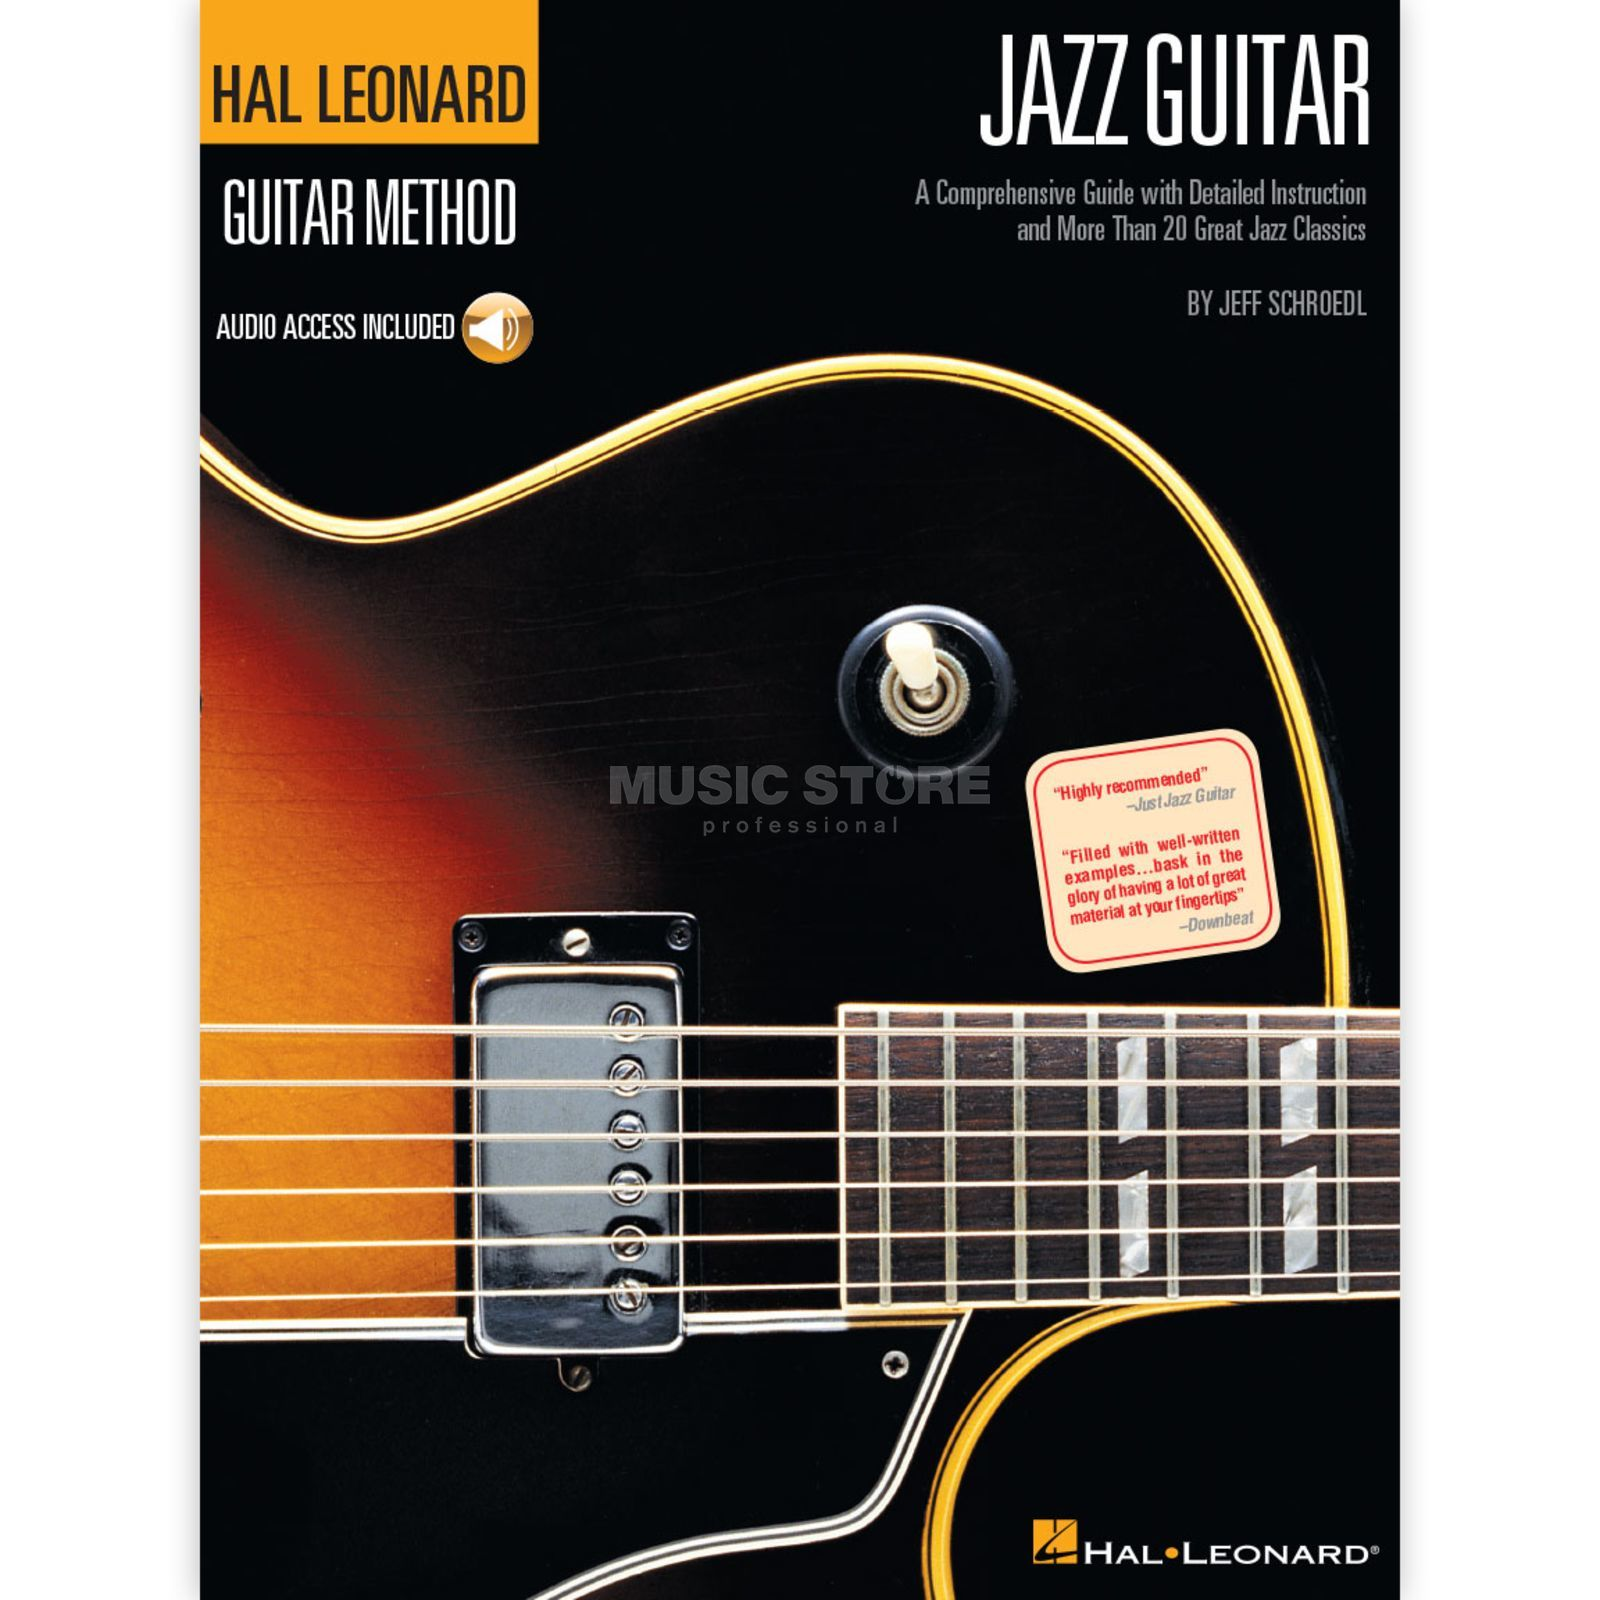 Hal Leonard Hal Leonard Guitar Method: Jazz Guitar Produktbild